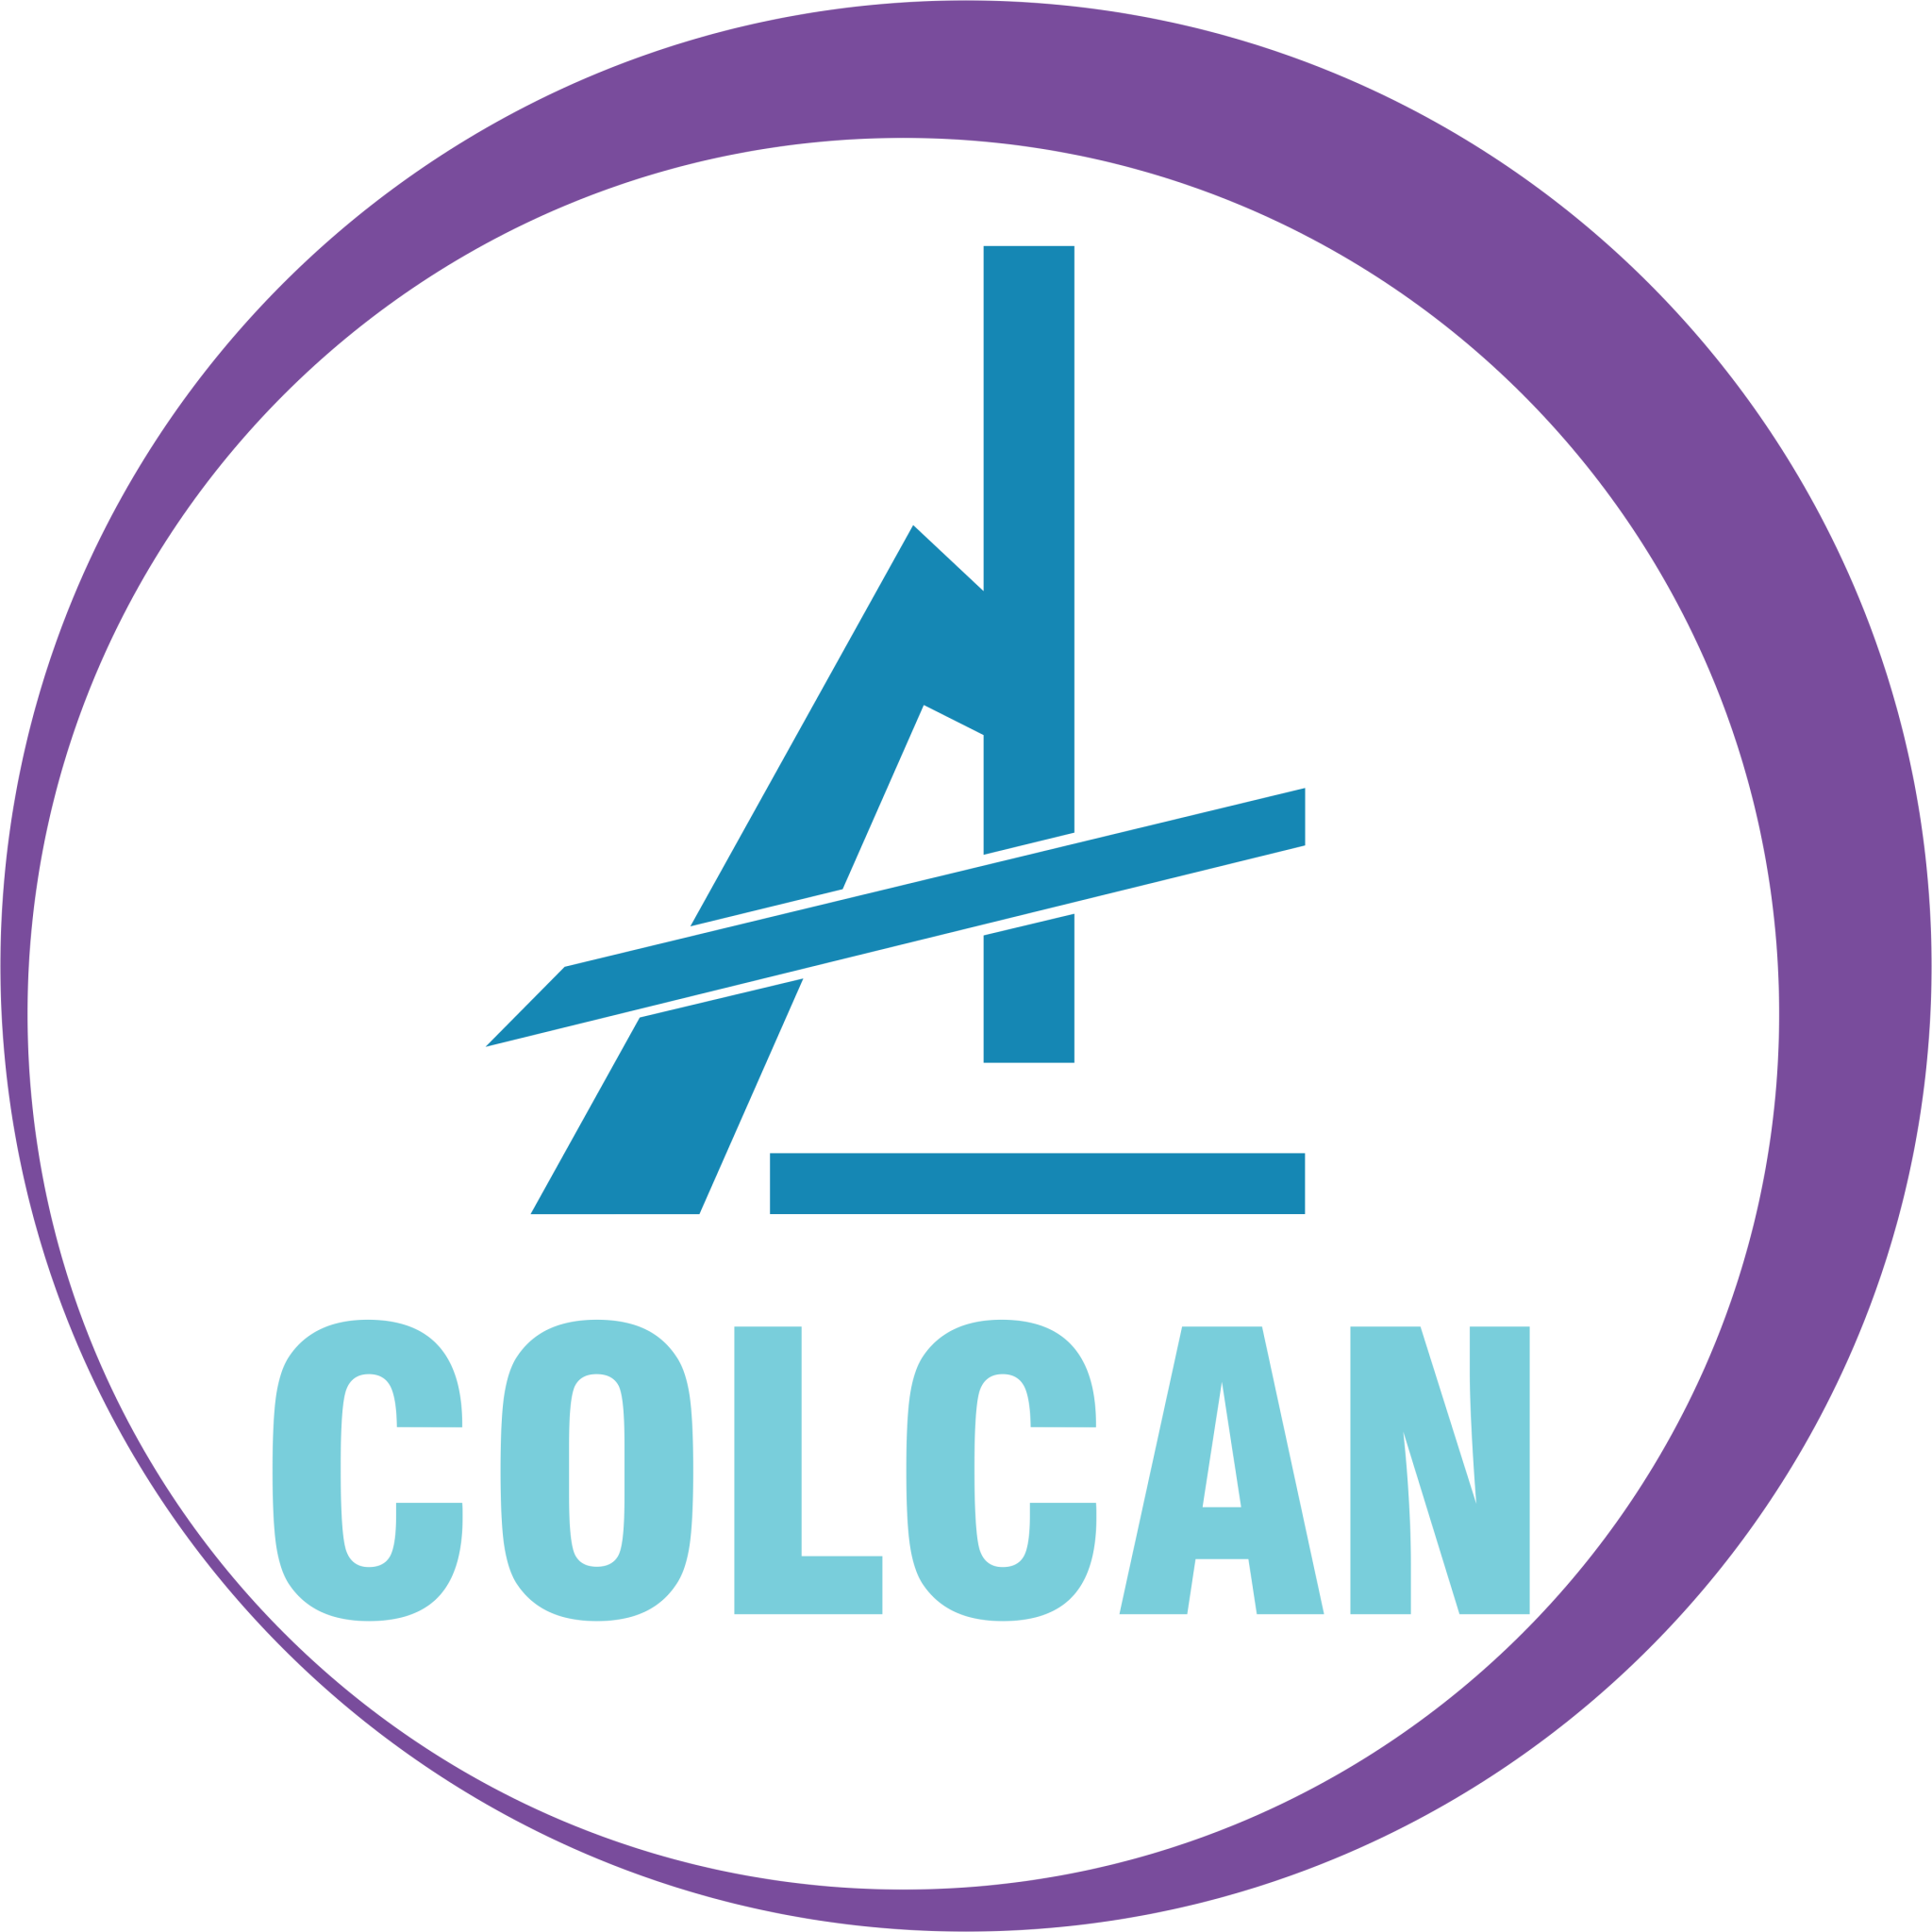 Colcan  S.A.S